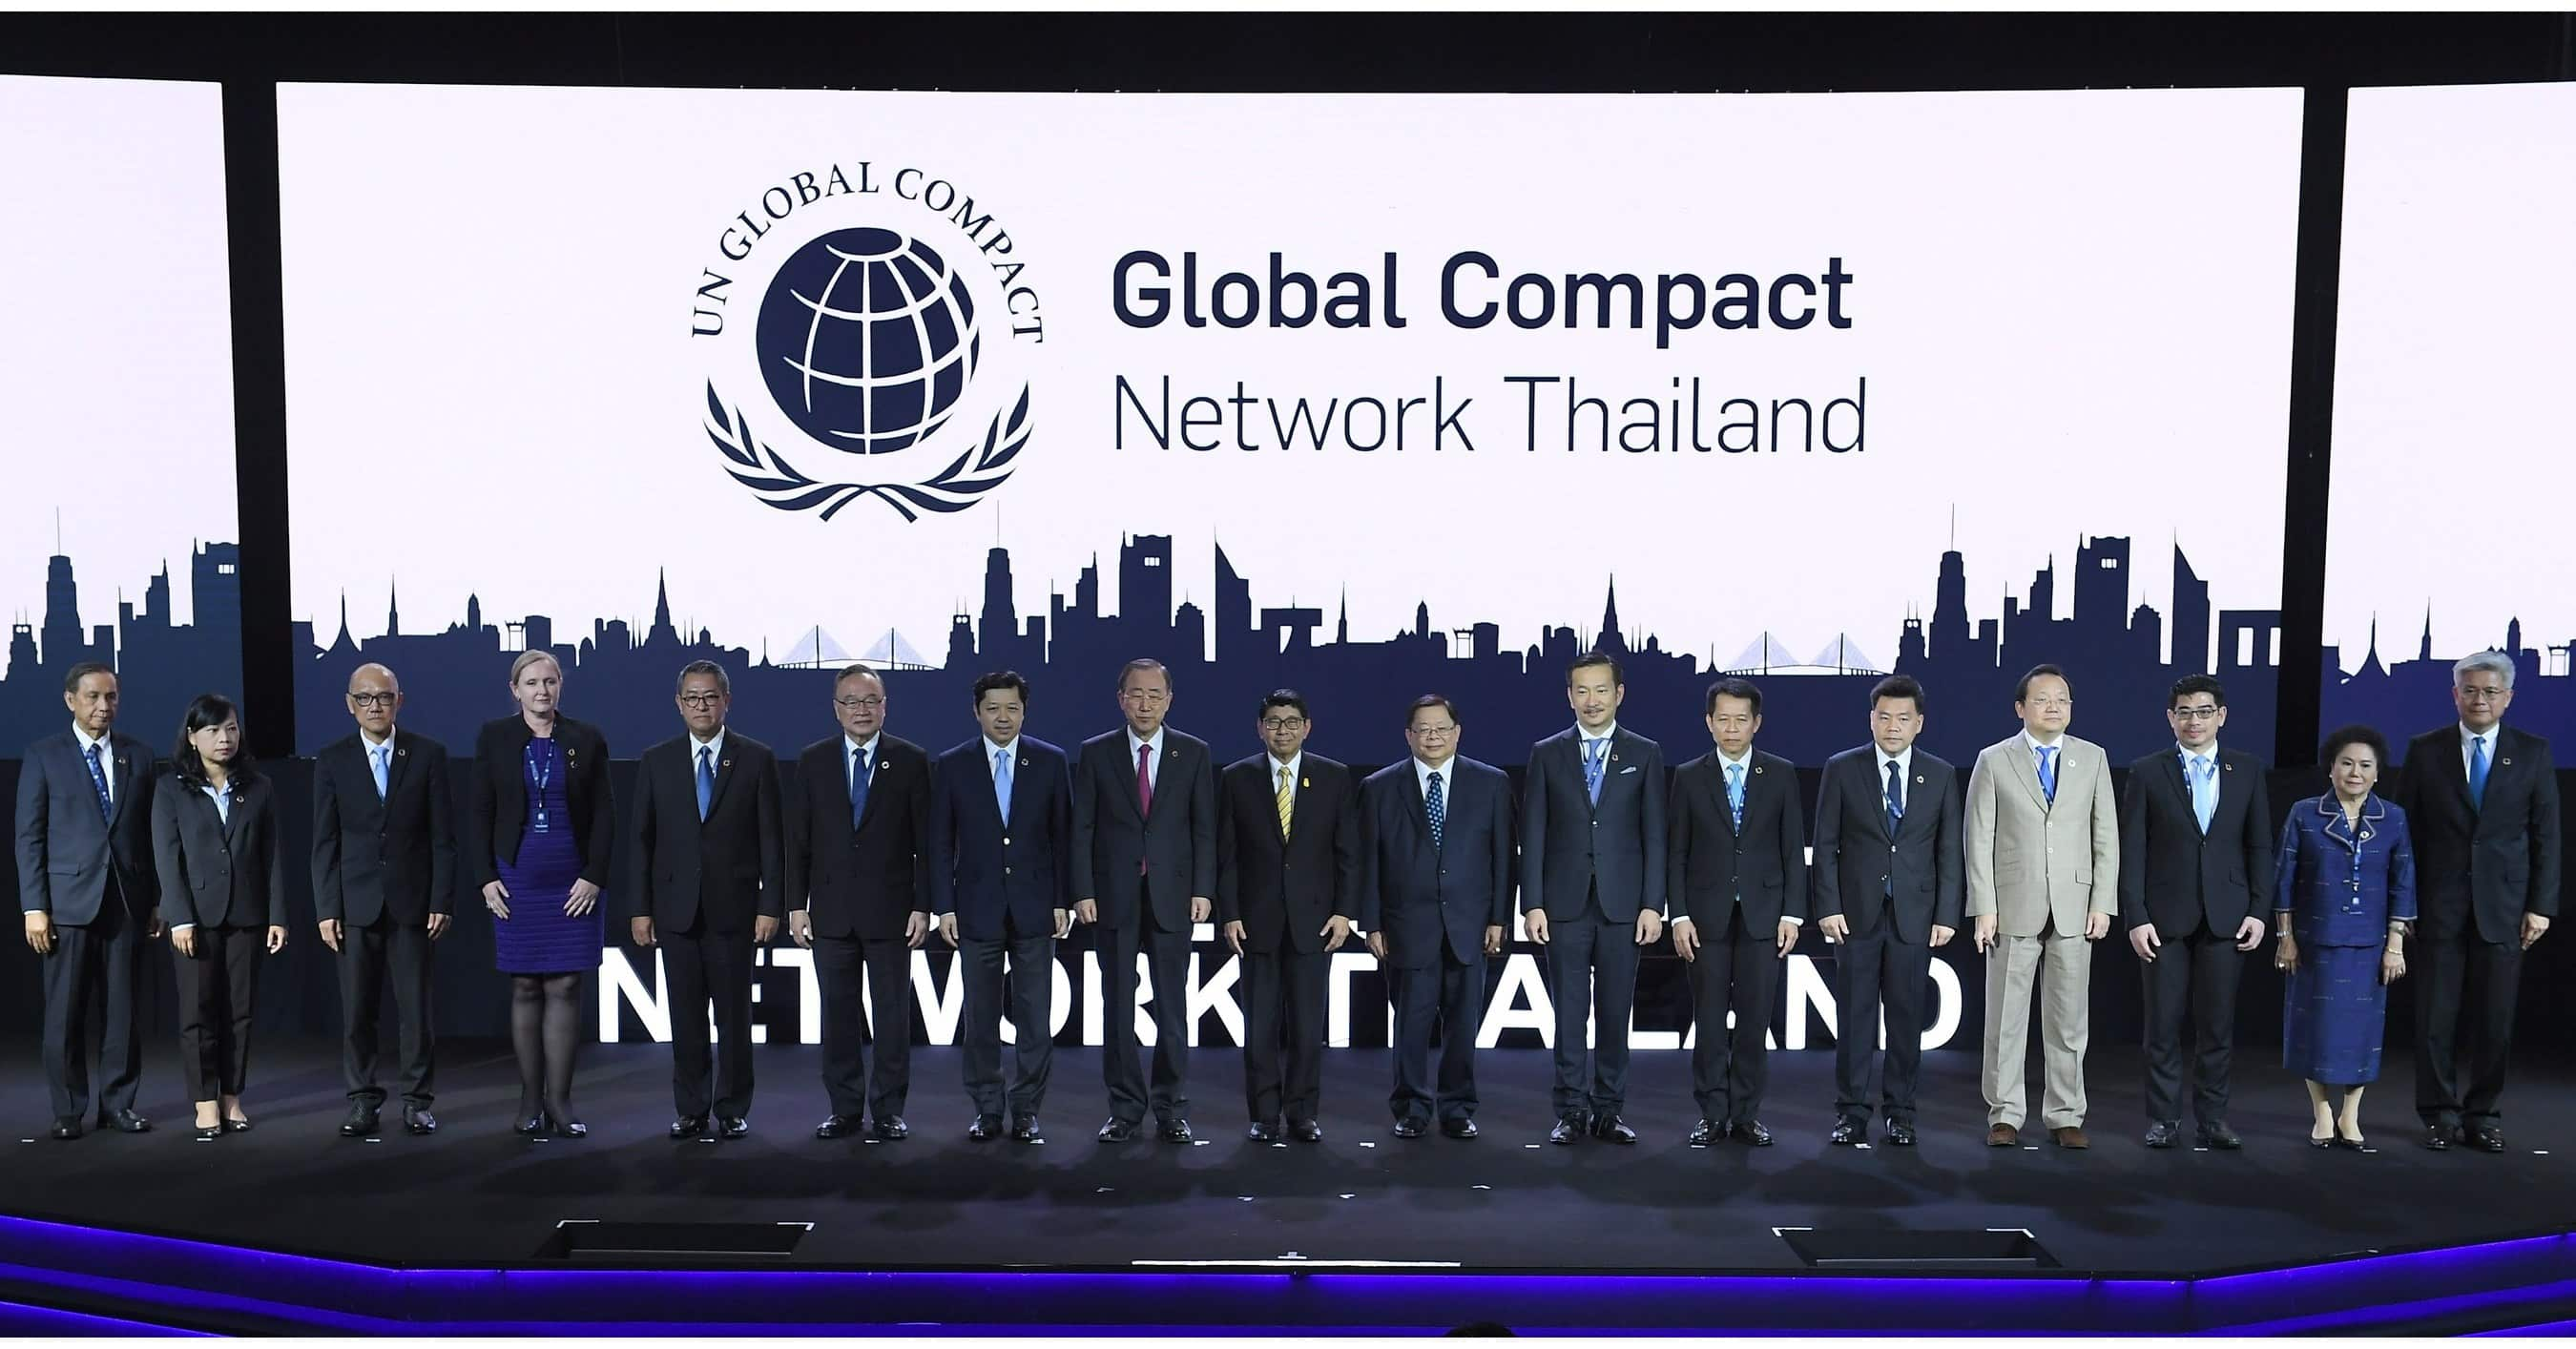 ban-ki-moon-attends-launch-of-global-compact-network-thailand-setting-off-private-sector-collaboration-for-countrys-sustainable-development-prnewswire Ban Ki-moon attends launch of Global Compact Network Thailand, setting off private-sector collaboration for country's sustainable development - PRNewswire